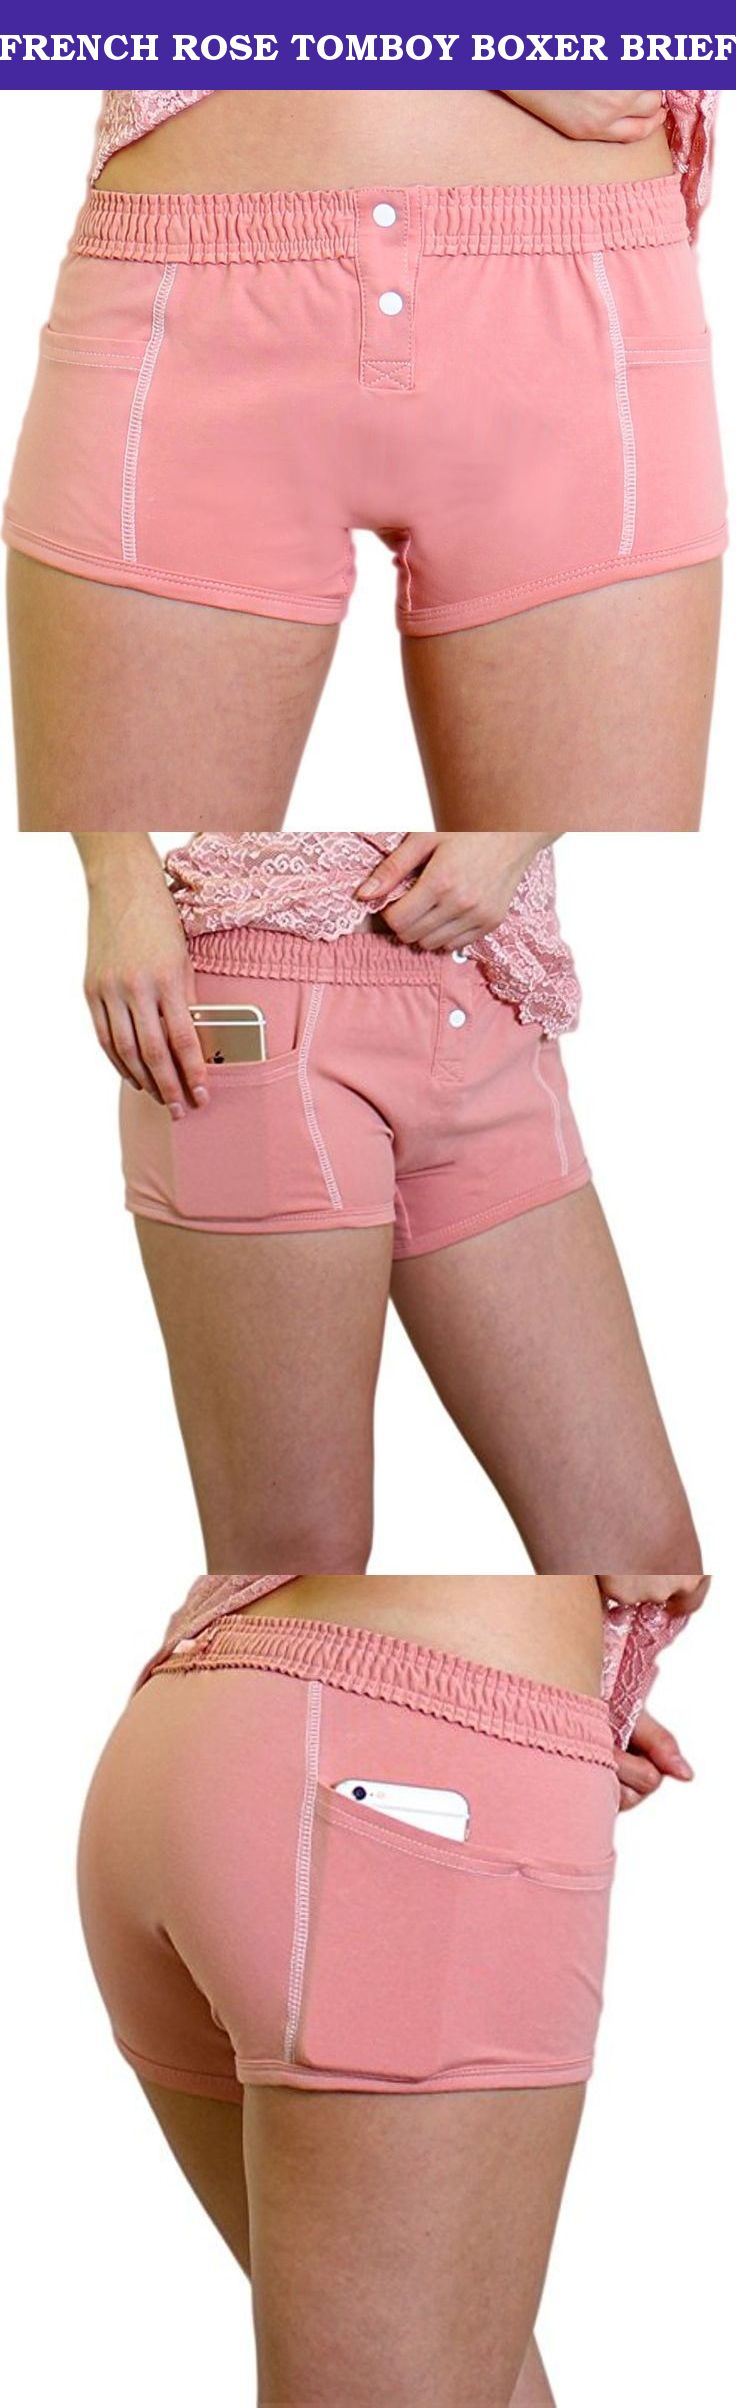 fec44882fd60 FRENCH ROSE TOMBOY BOXER BRIEF. FOXERS women's boxer briefs are ...